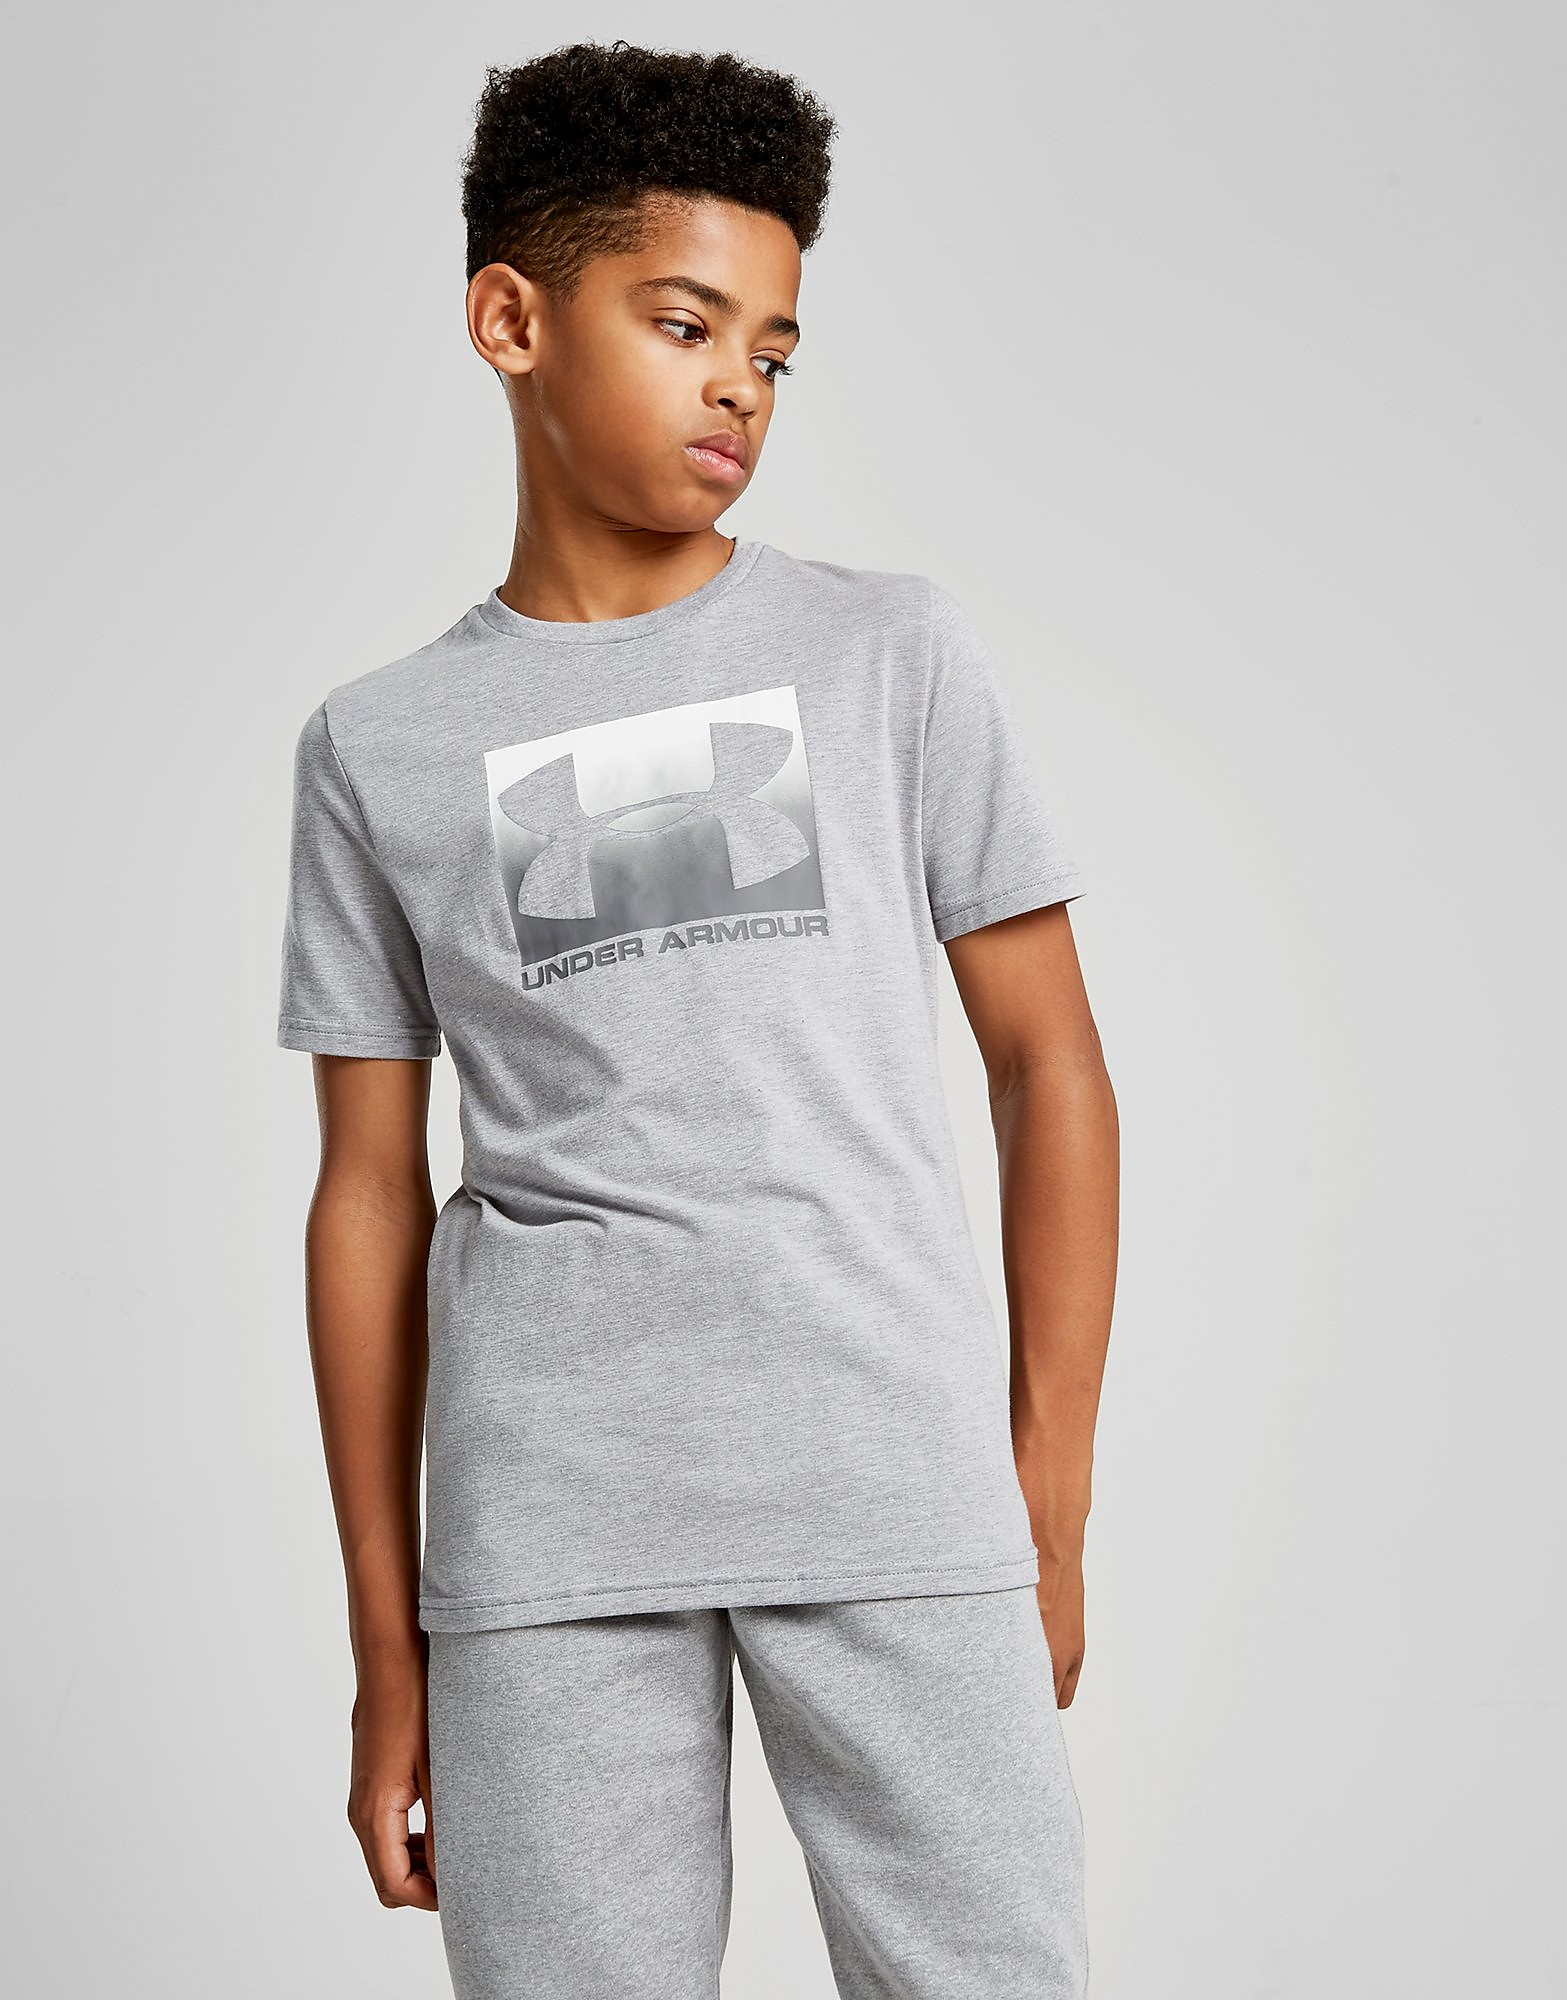 Under Armour Box T-Shirt Junior